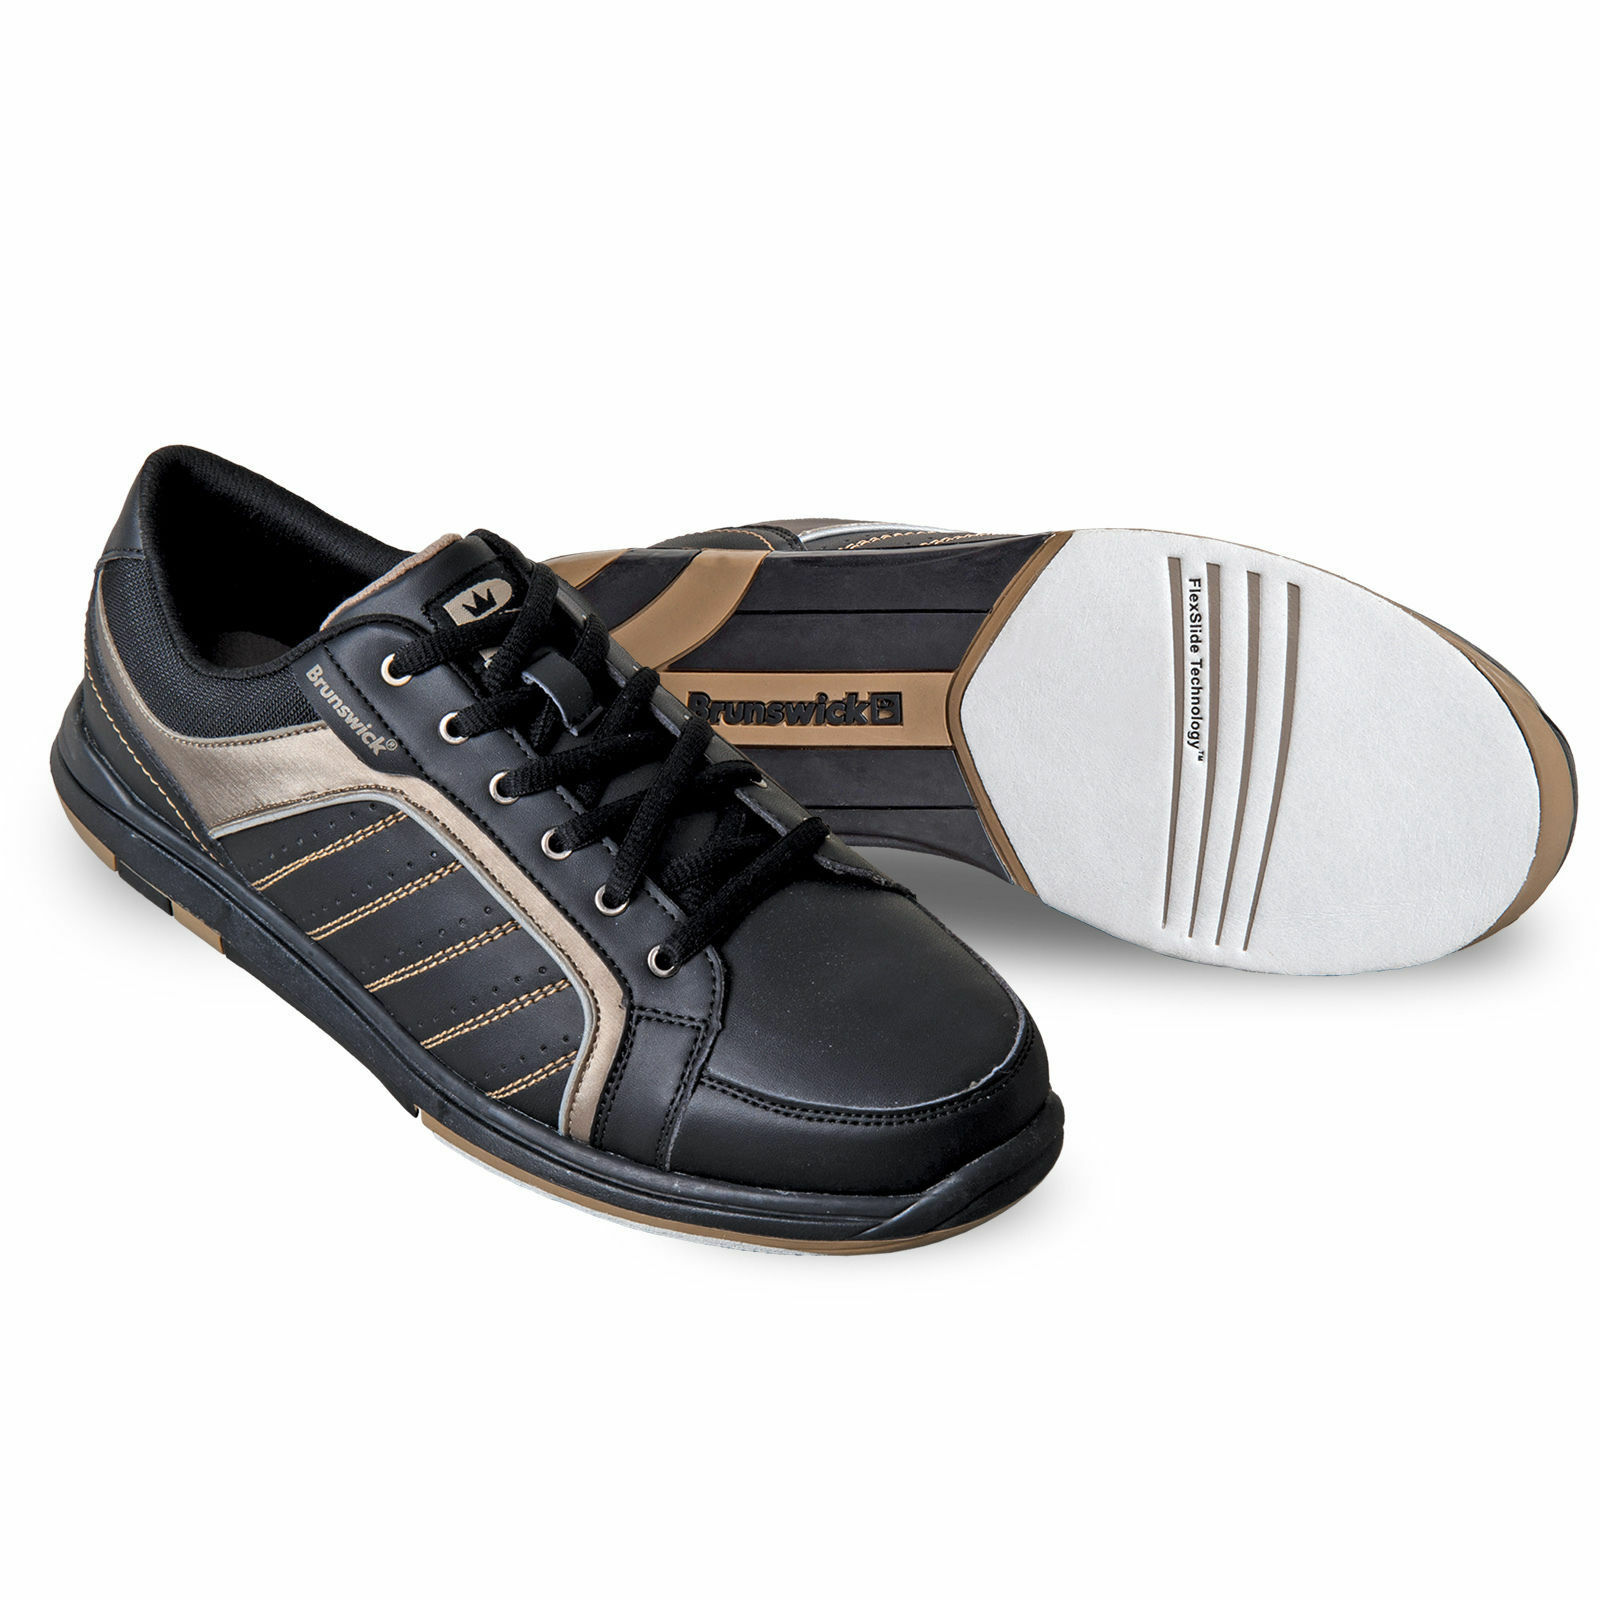 Mens Brunswick CAPTAIN Black with Gold Trim Bowling Shoes Sizes 7 - 14 фото c48161a0bfb